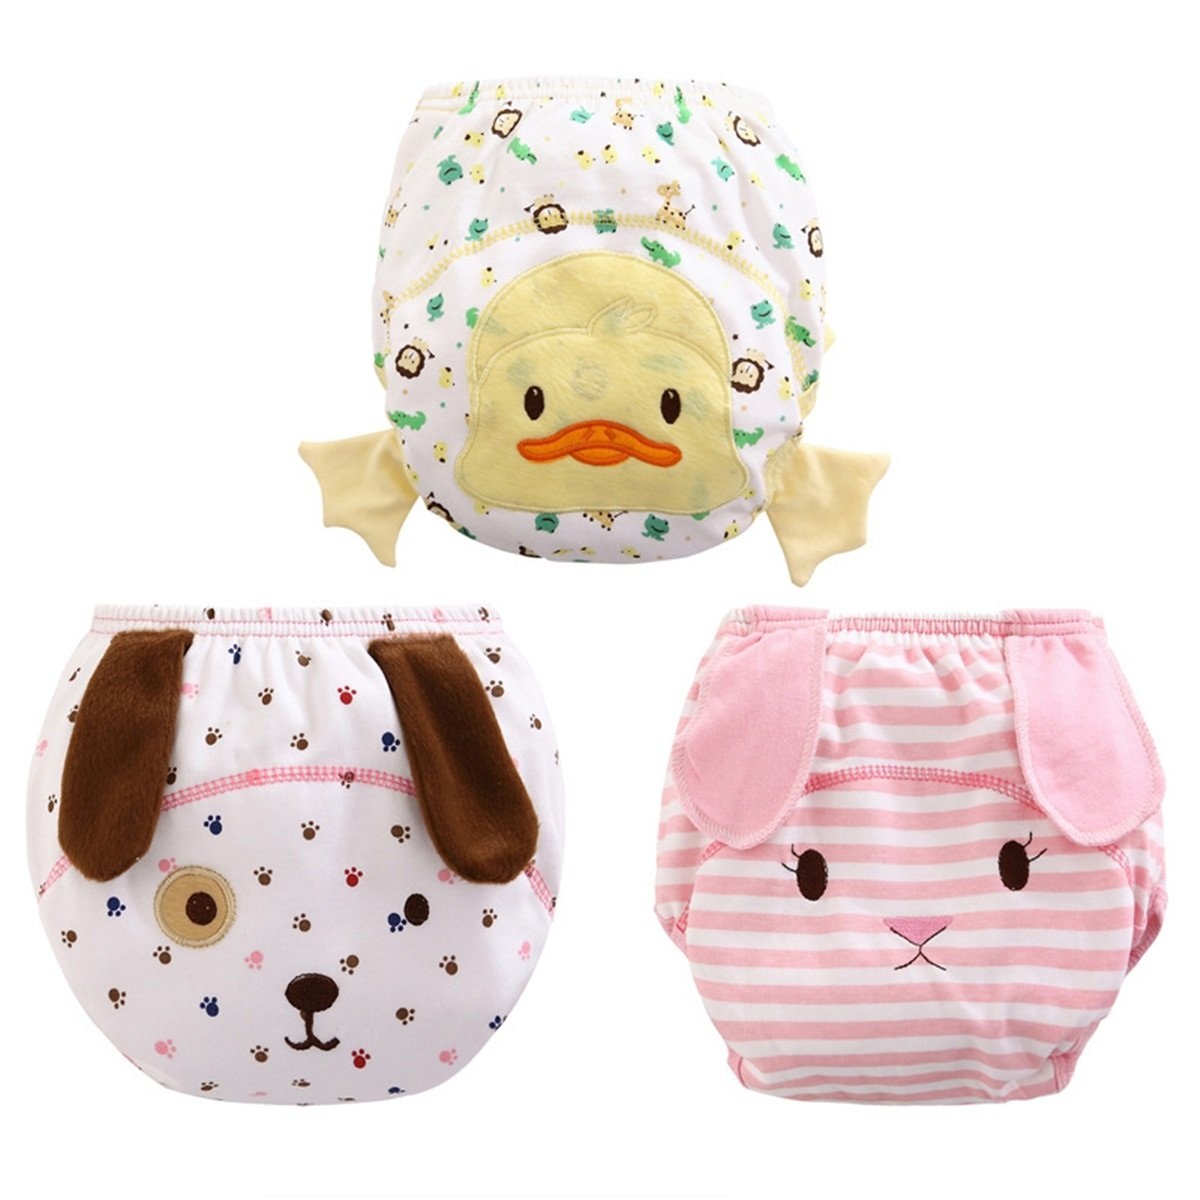 BIG ELEPHANT Unisex-Baby Toddler 3 Pack Cute Training Pants Underwear Assortment B93 product image